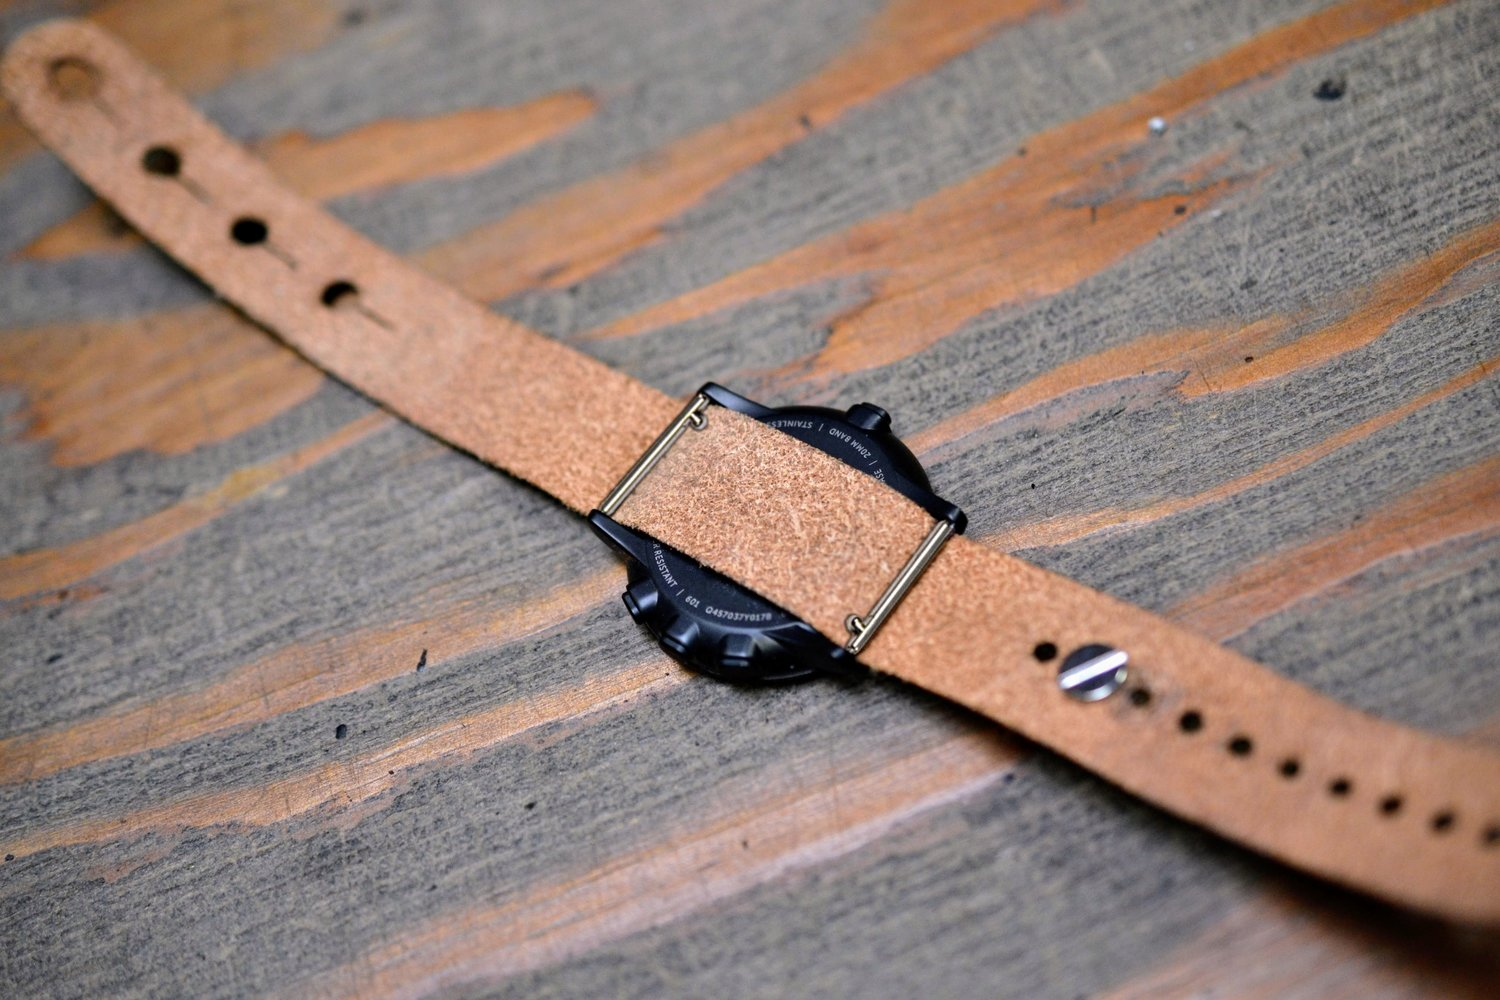 f7383c7d8c0 Pebble Time Round 20mm Kit - Ruler Stud Passthrough Watch Strap ...